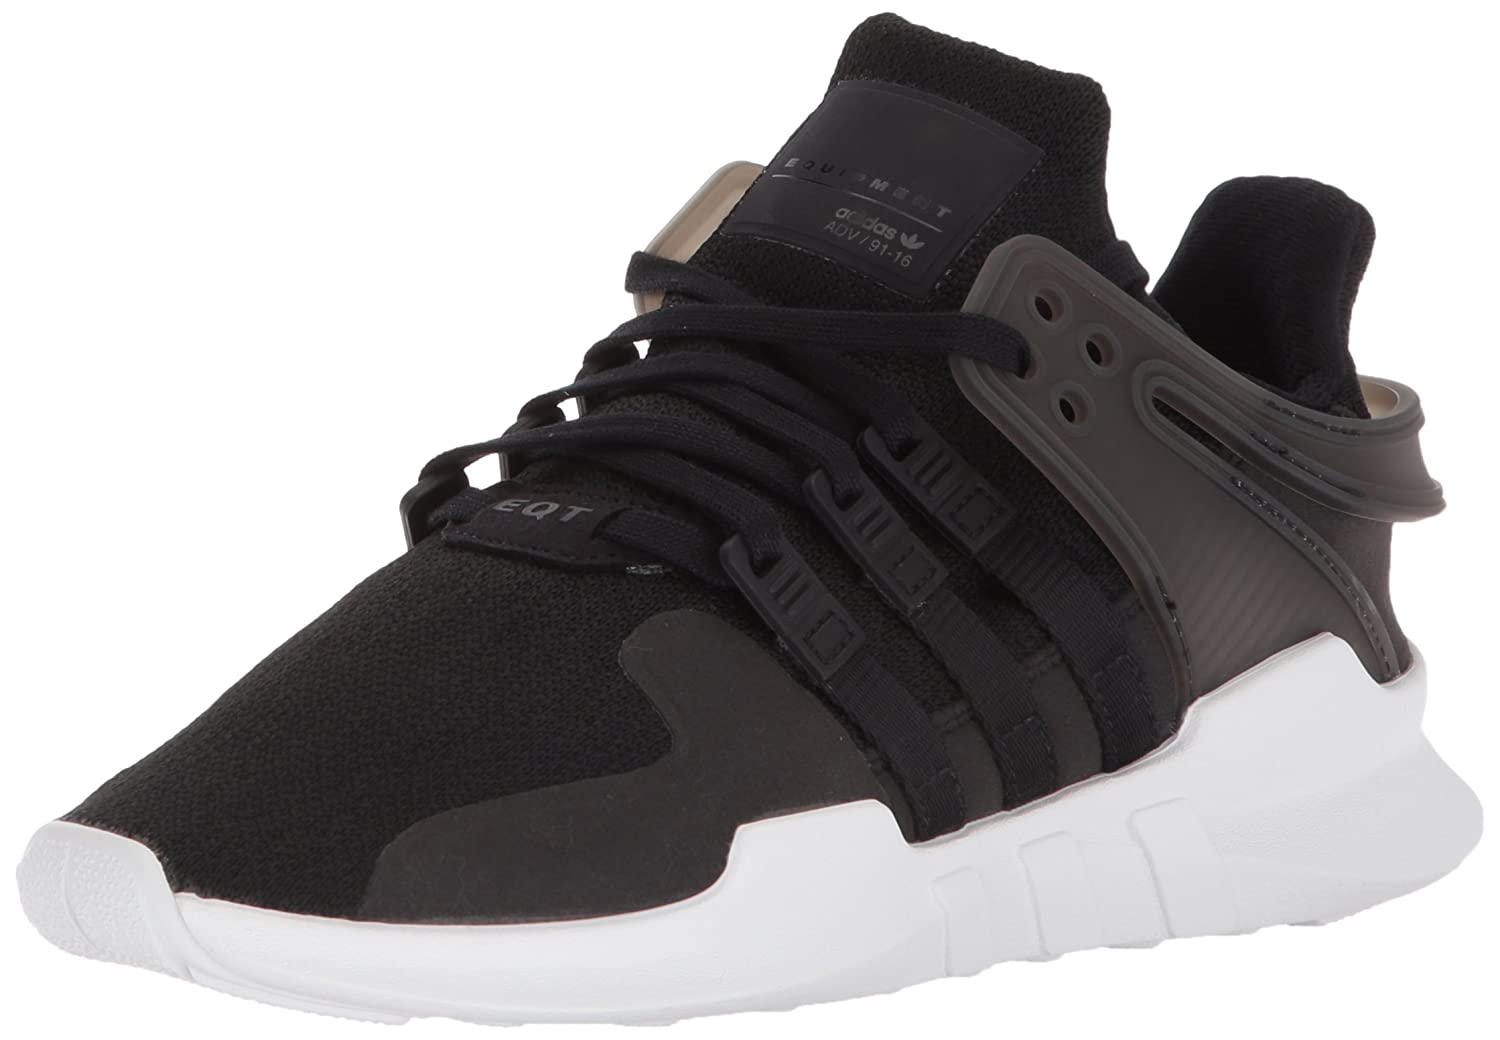 official photos 5f7f8 f3fe1 adidas Originals Unisex-Child EQT Support ADV Shoe Sneakers